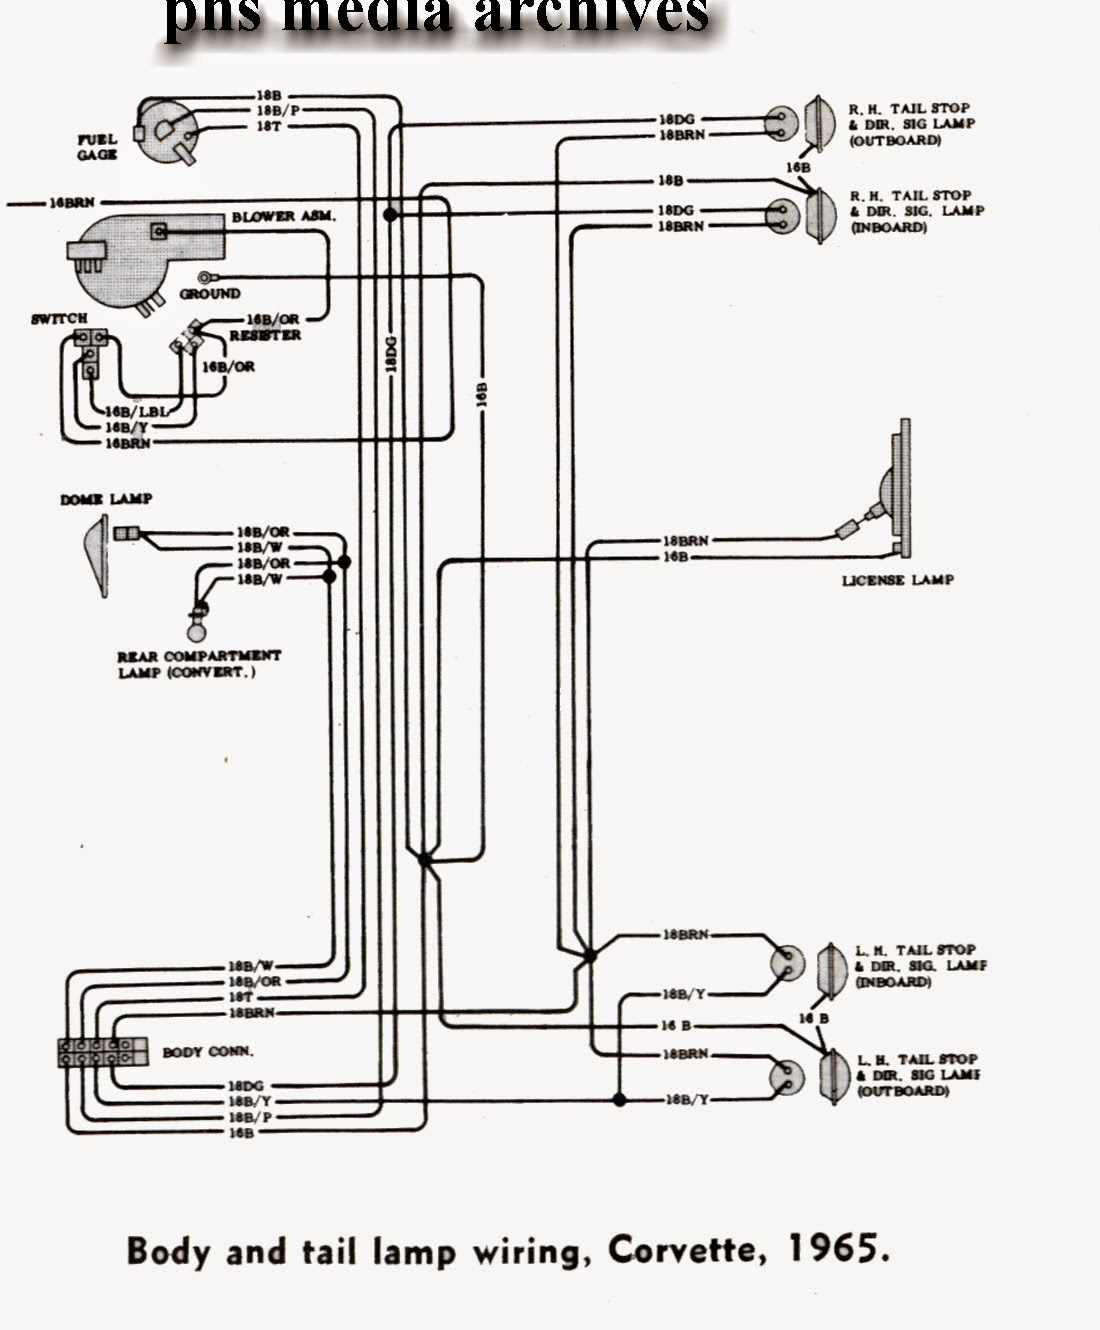 Phscollectorcarworld  Tech Series  1965 Chevrolet Corvette Wiring Diagrams  Engine  Fuse Panel